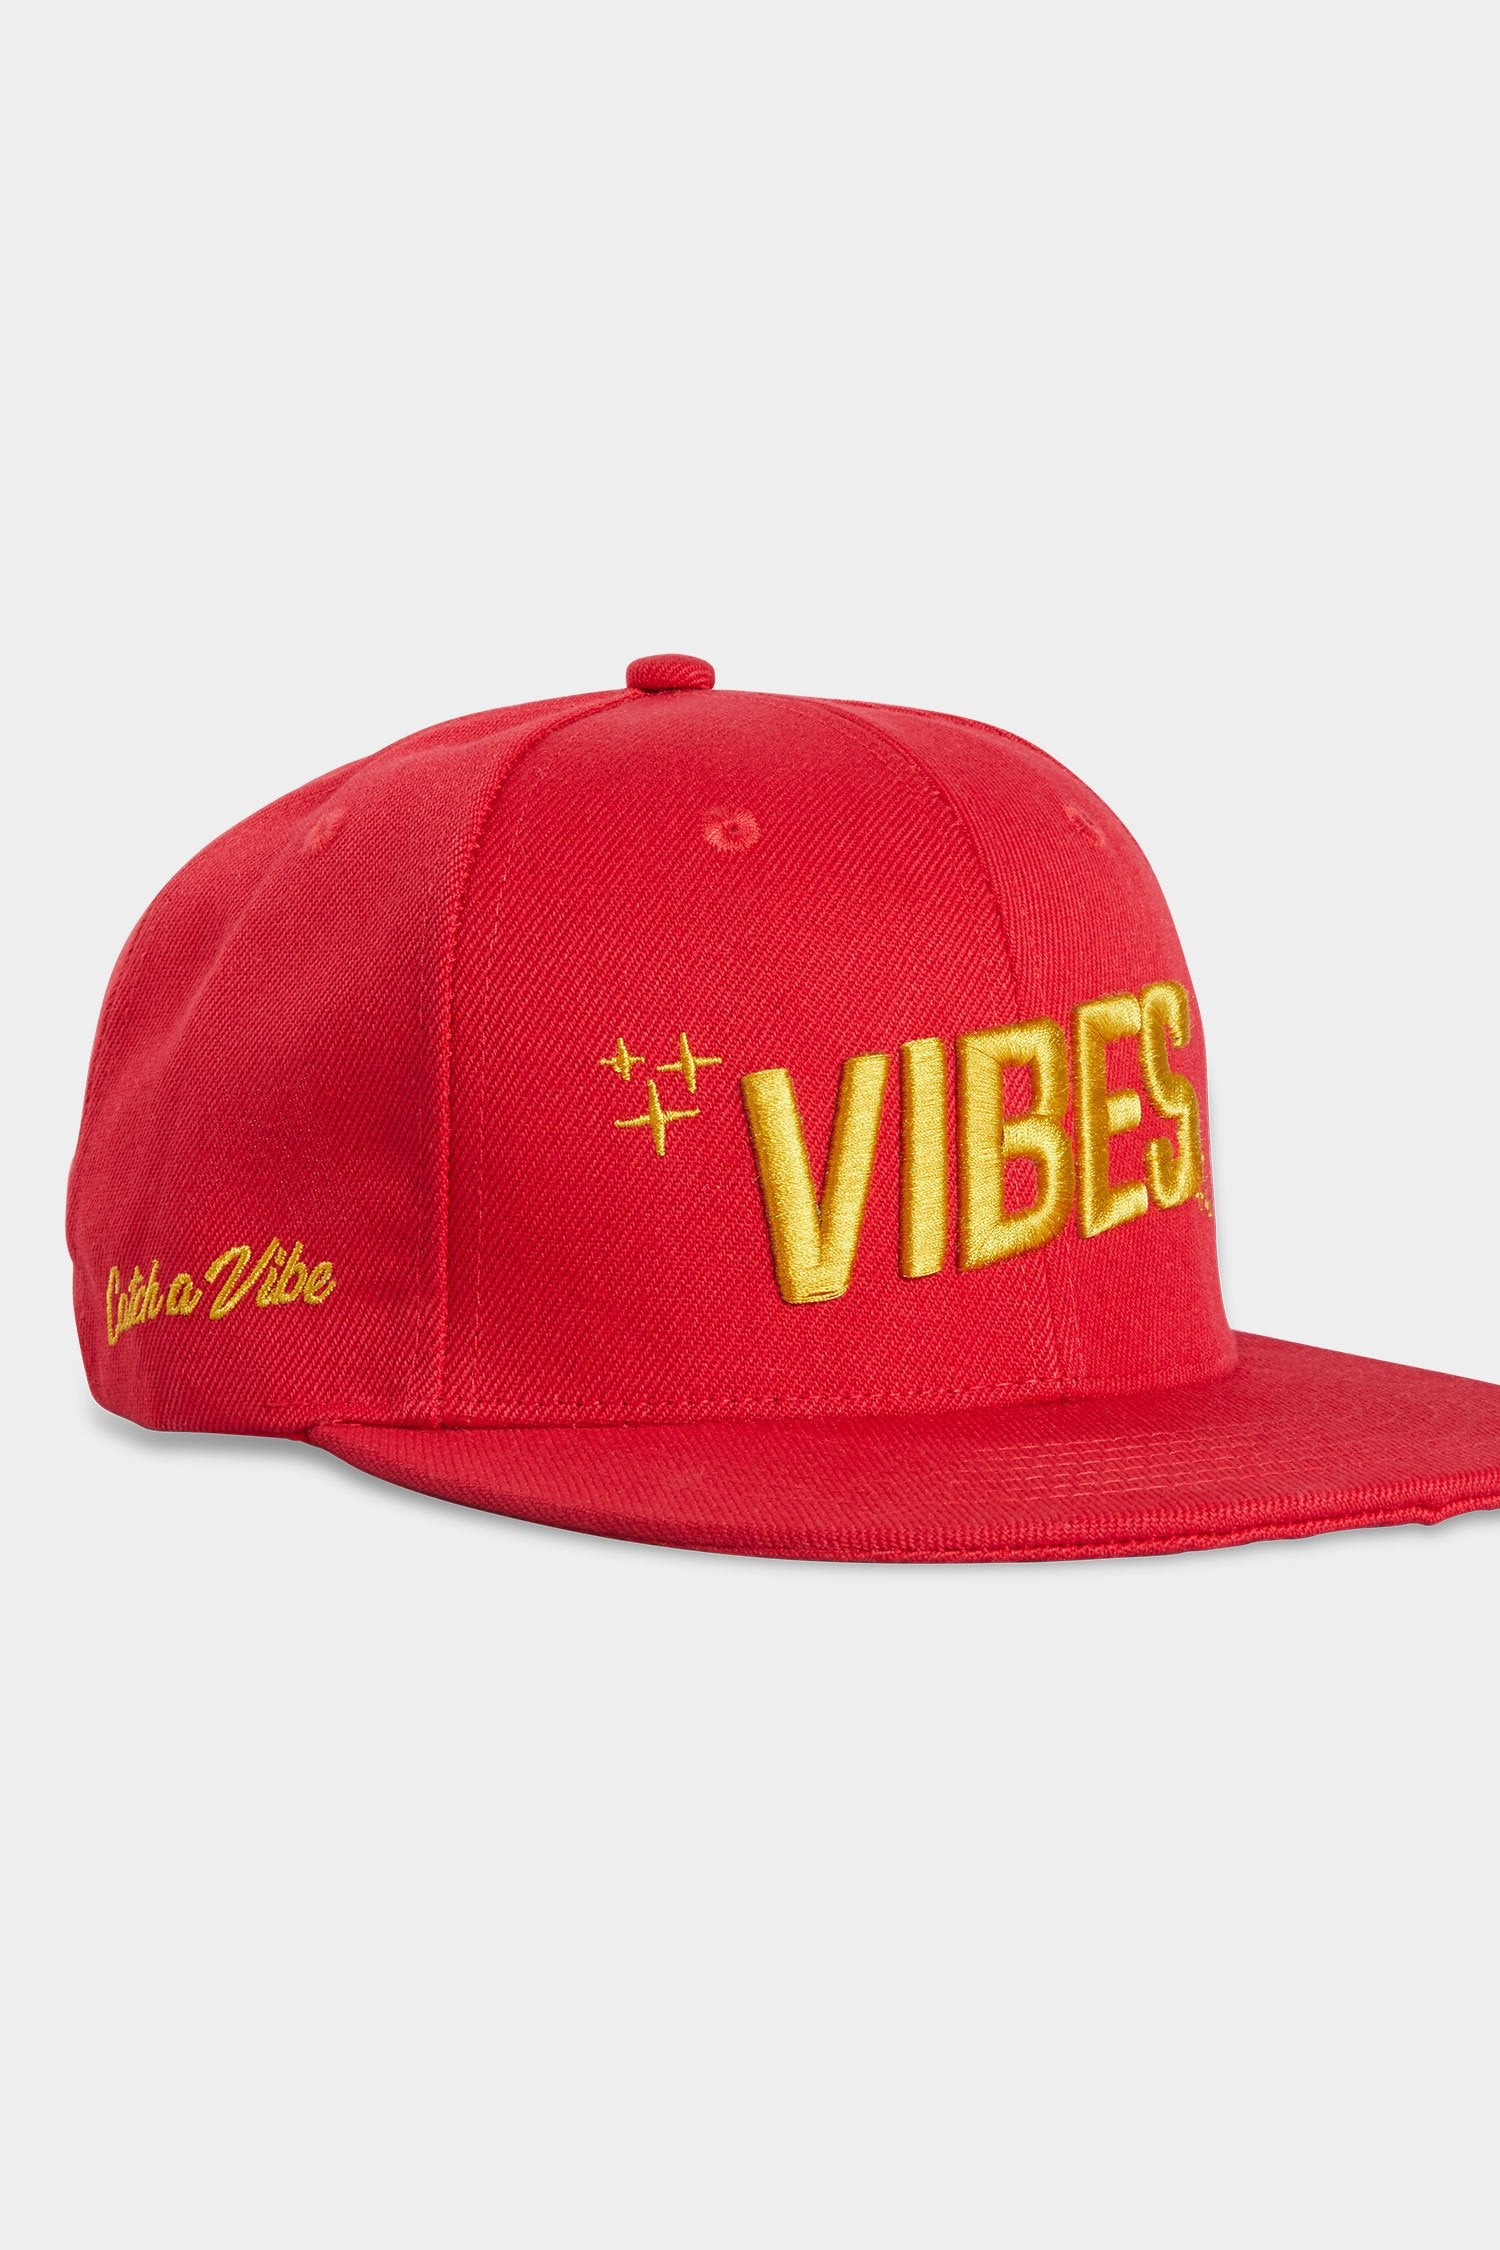 Vibes Snapback Hat Red